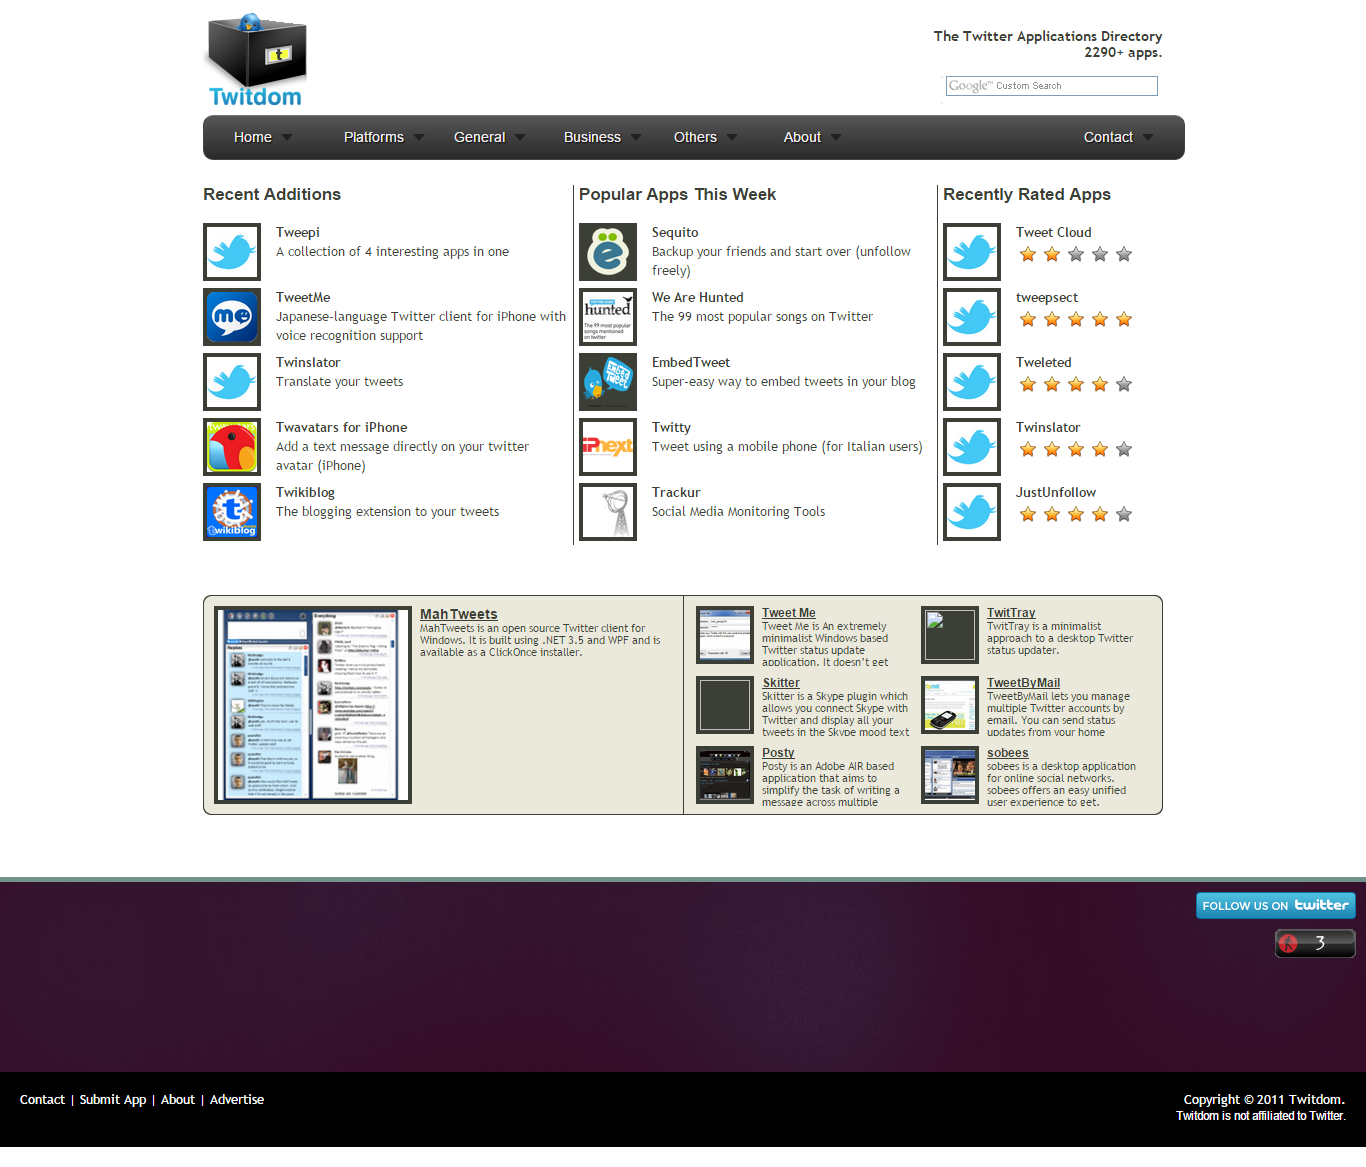 A comprehensive database of Twitter Applications with thousands of apps categorized, tagged, and ranked.